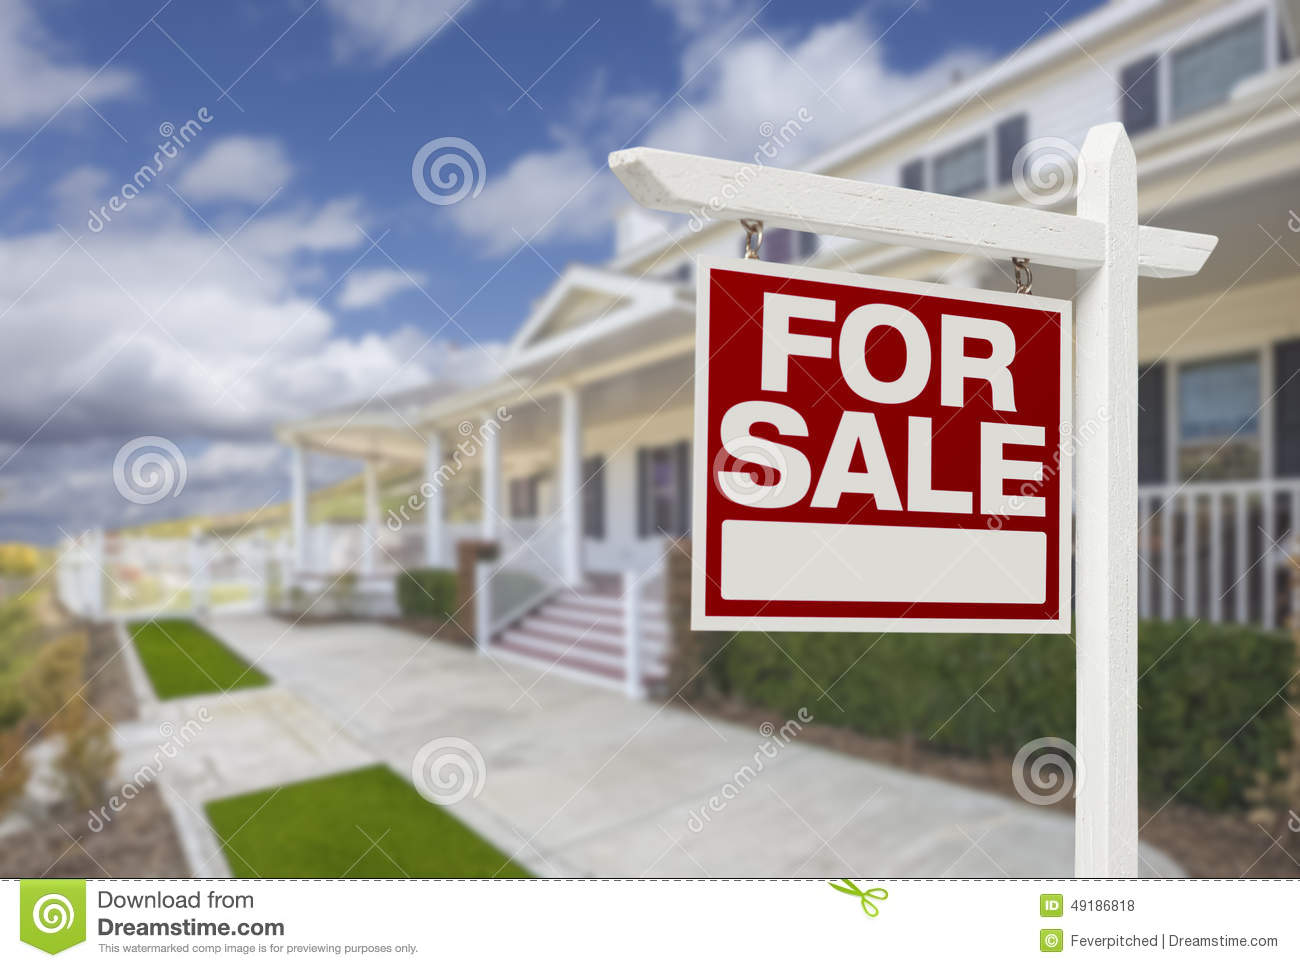 Home for sale real estate sign and house stock photo Beautiful real estate pictures